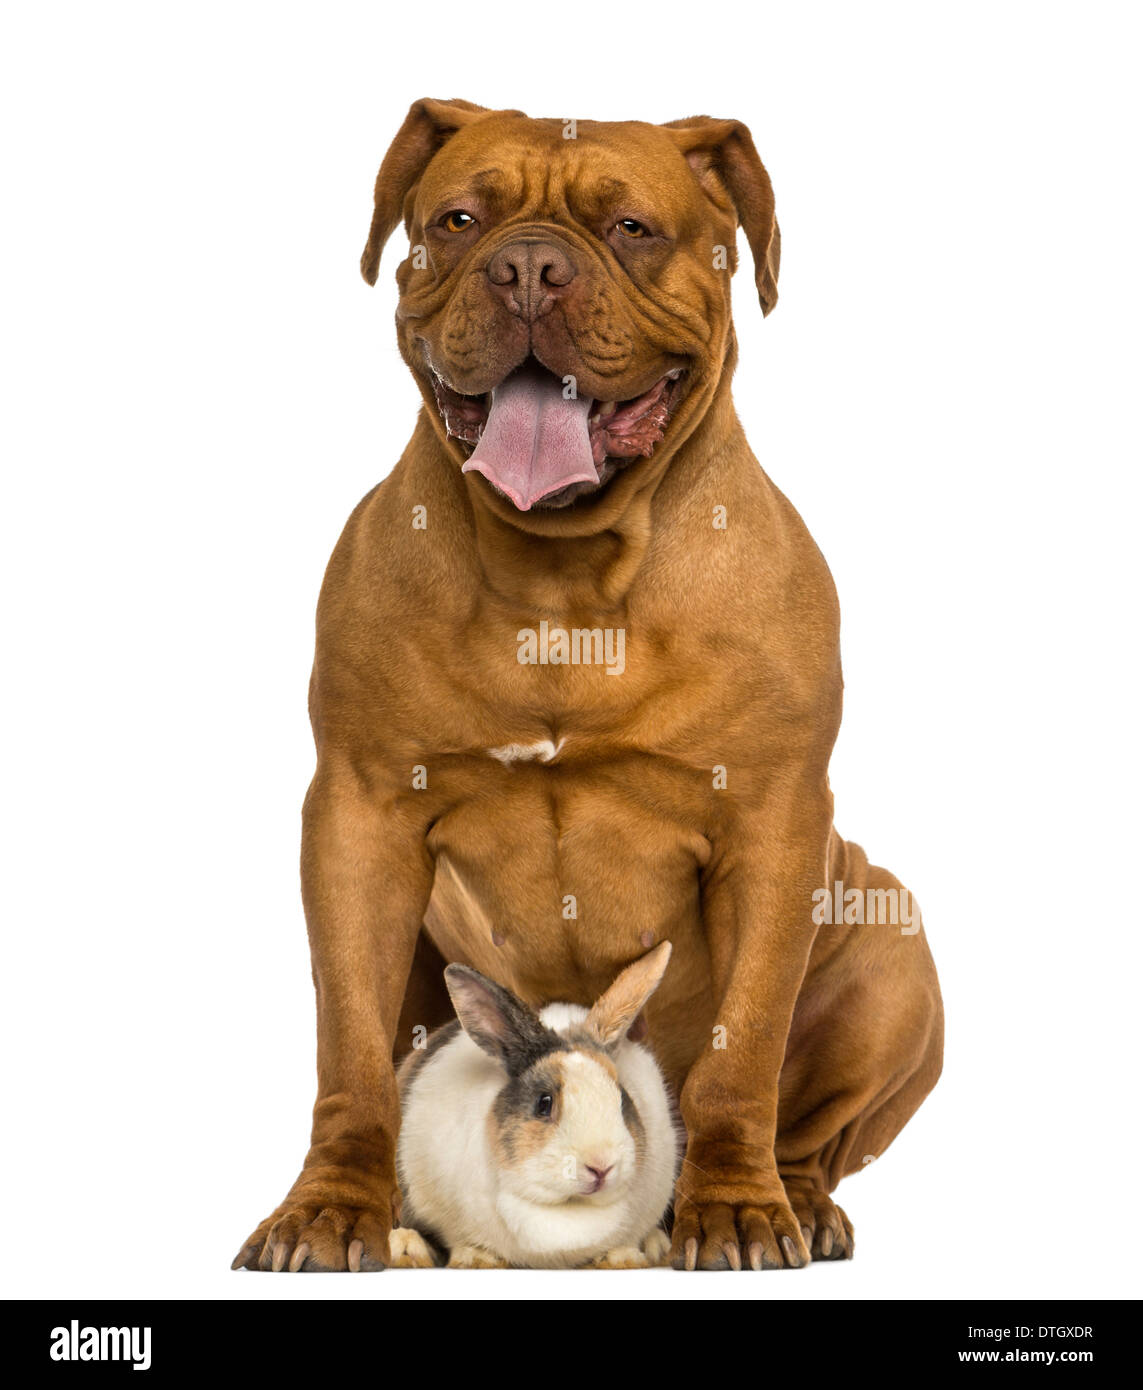 Front view of a Dogue de Bordeaux panting, sitting with a rabbit against white background - Stock Image